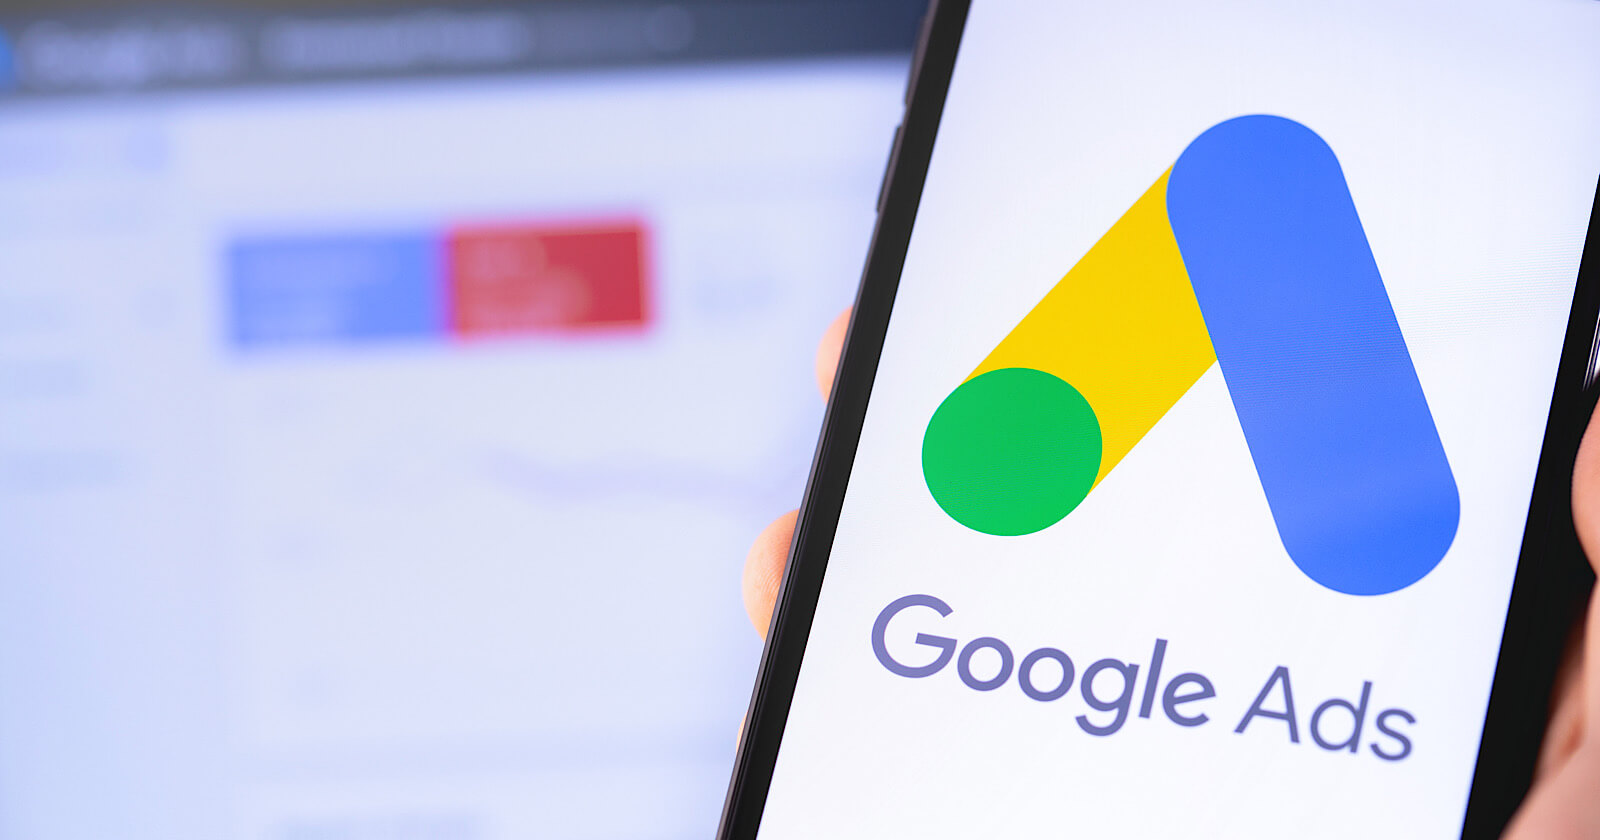 Roofing Google AdWords is now Google Ads